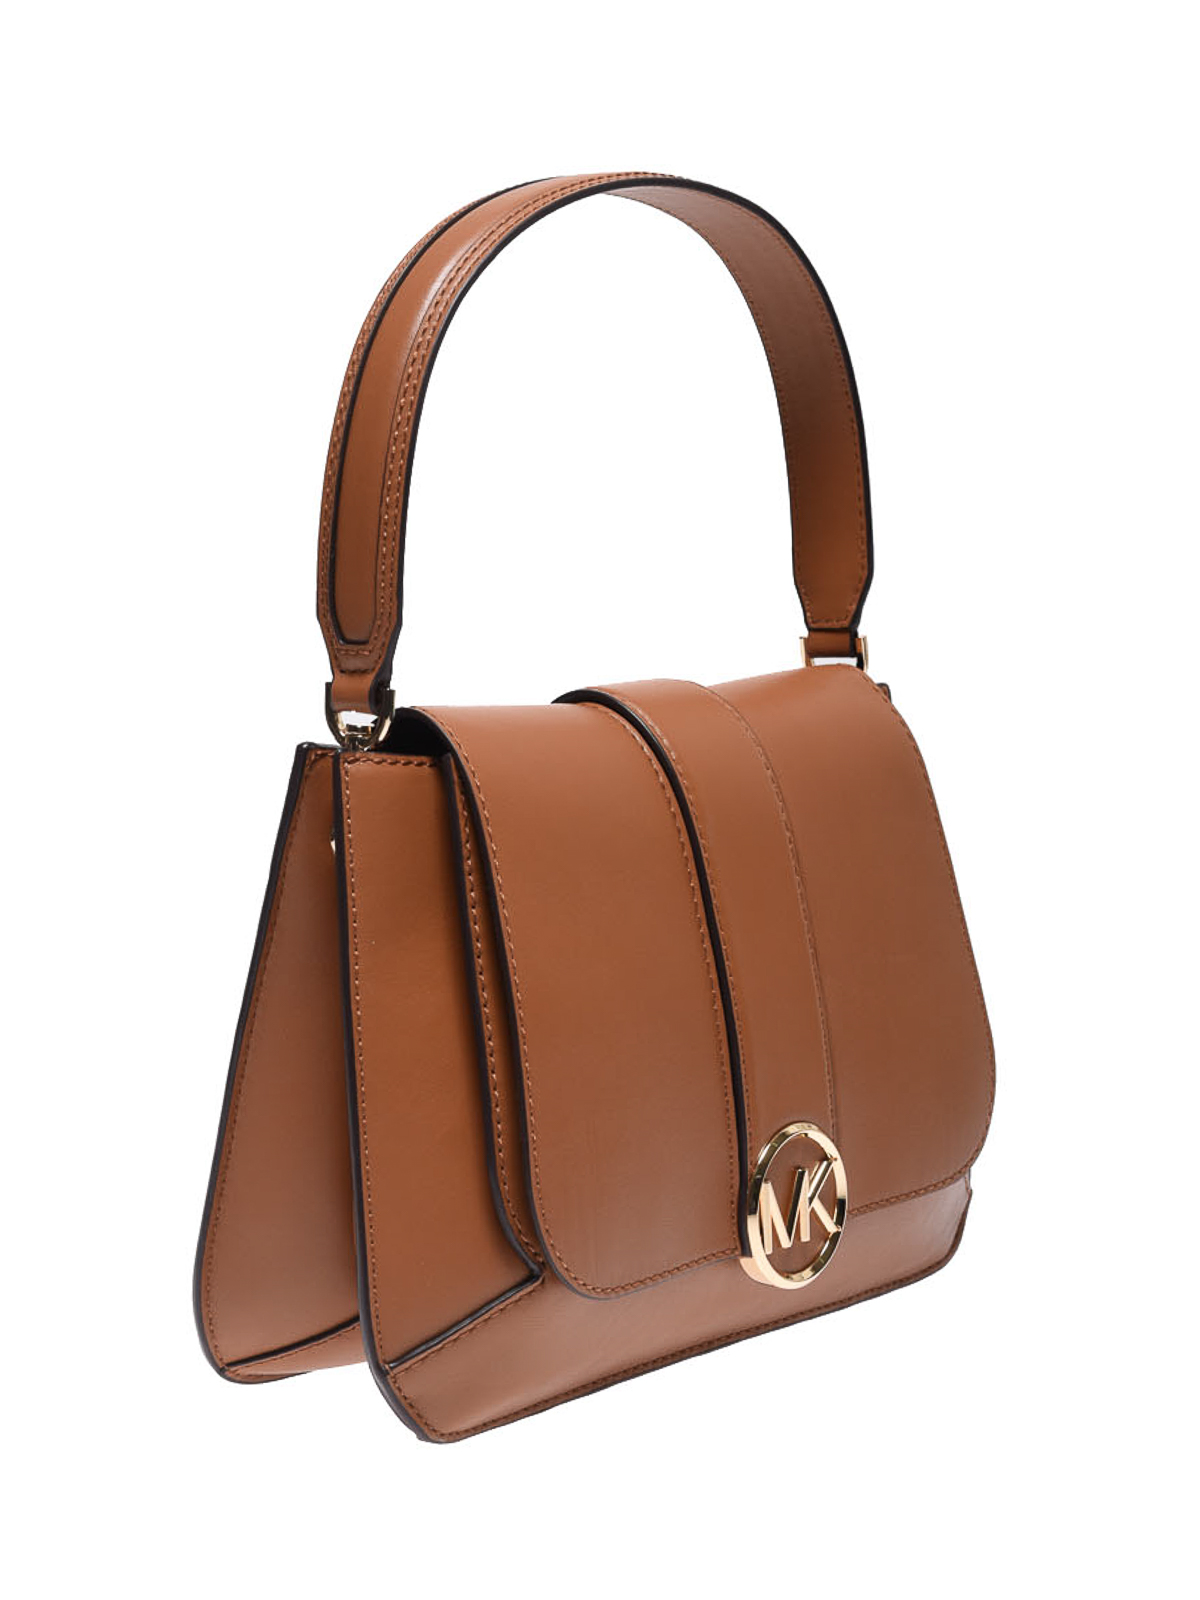 fcf11f46f154 MICHAEL KORS: shoulder bags online - Lillie medium shoulder bag